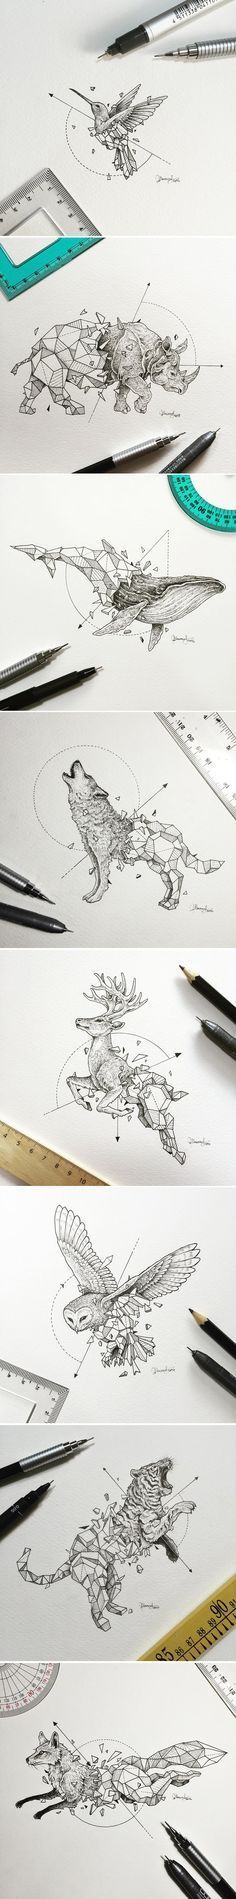 Manila-based illustrator Kerby Rosanes known as Sketchy Stories has created a new series of sketches combing animals with geometric forms.